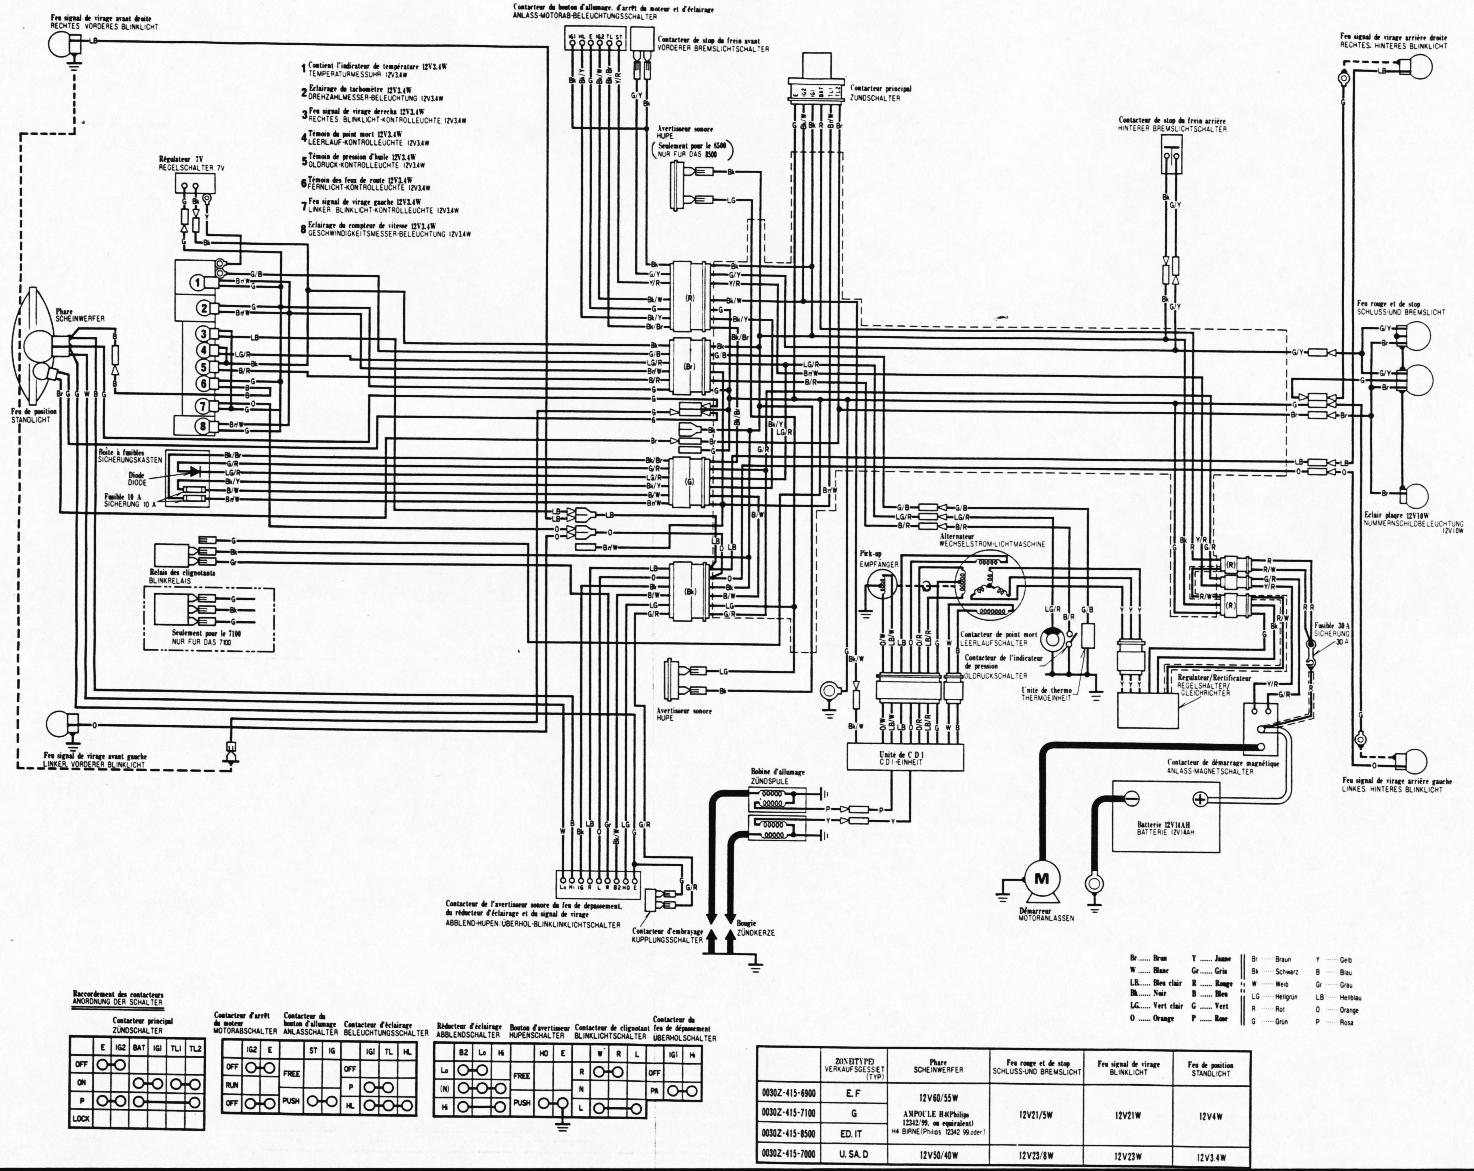 wiring diagram 81 honda cx500 wiring diagrams1195 honda accord lx wiring schematic wiring diagram1981 honda cx500 wiring diagram auto electrical wiring diagram1195